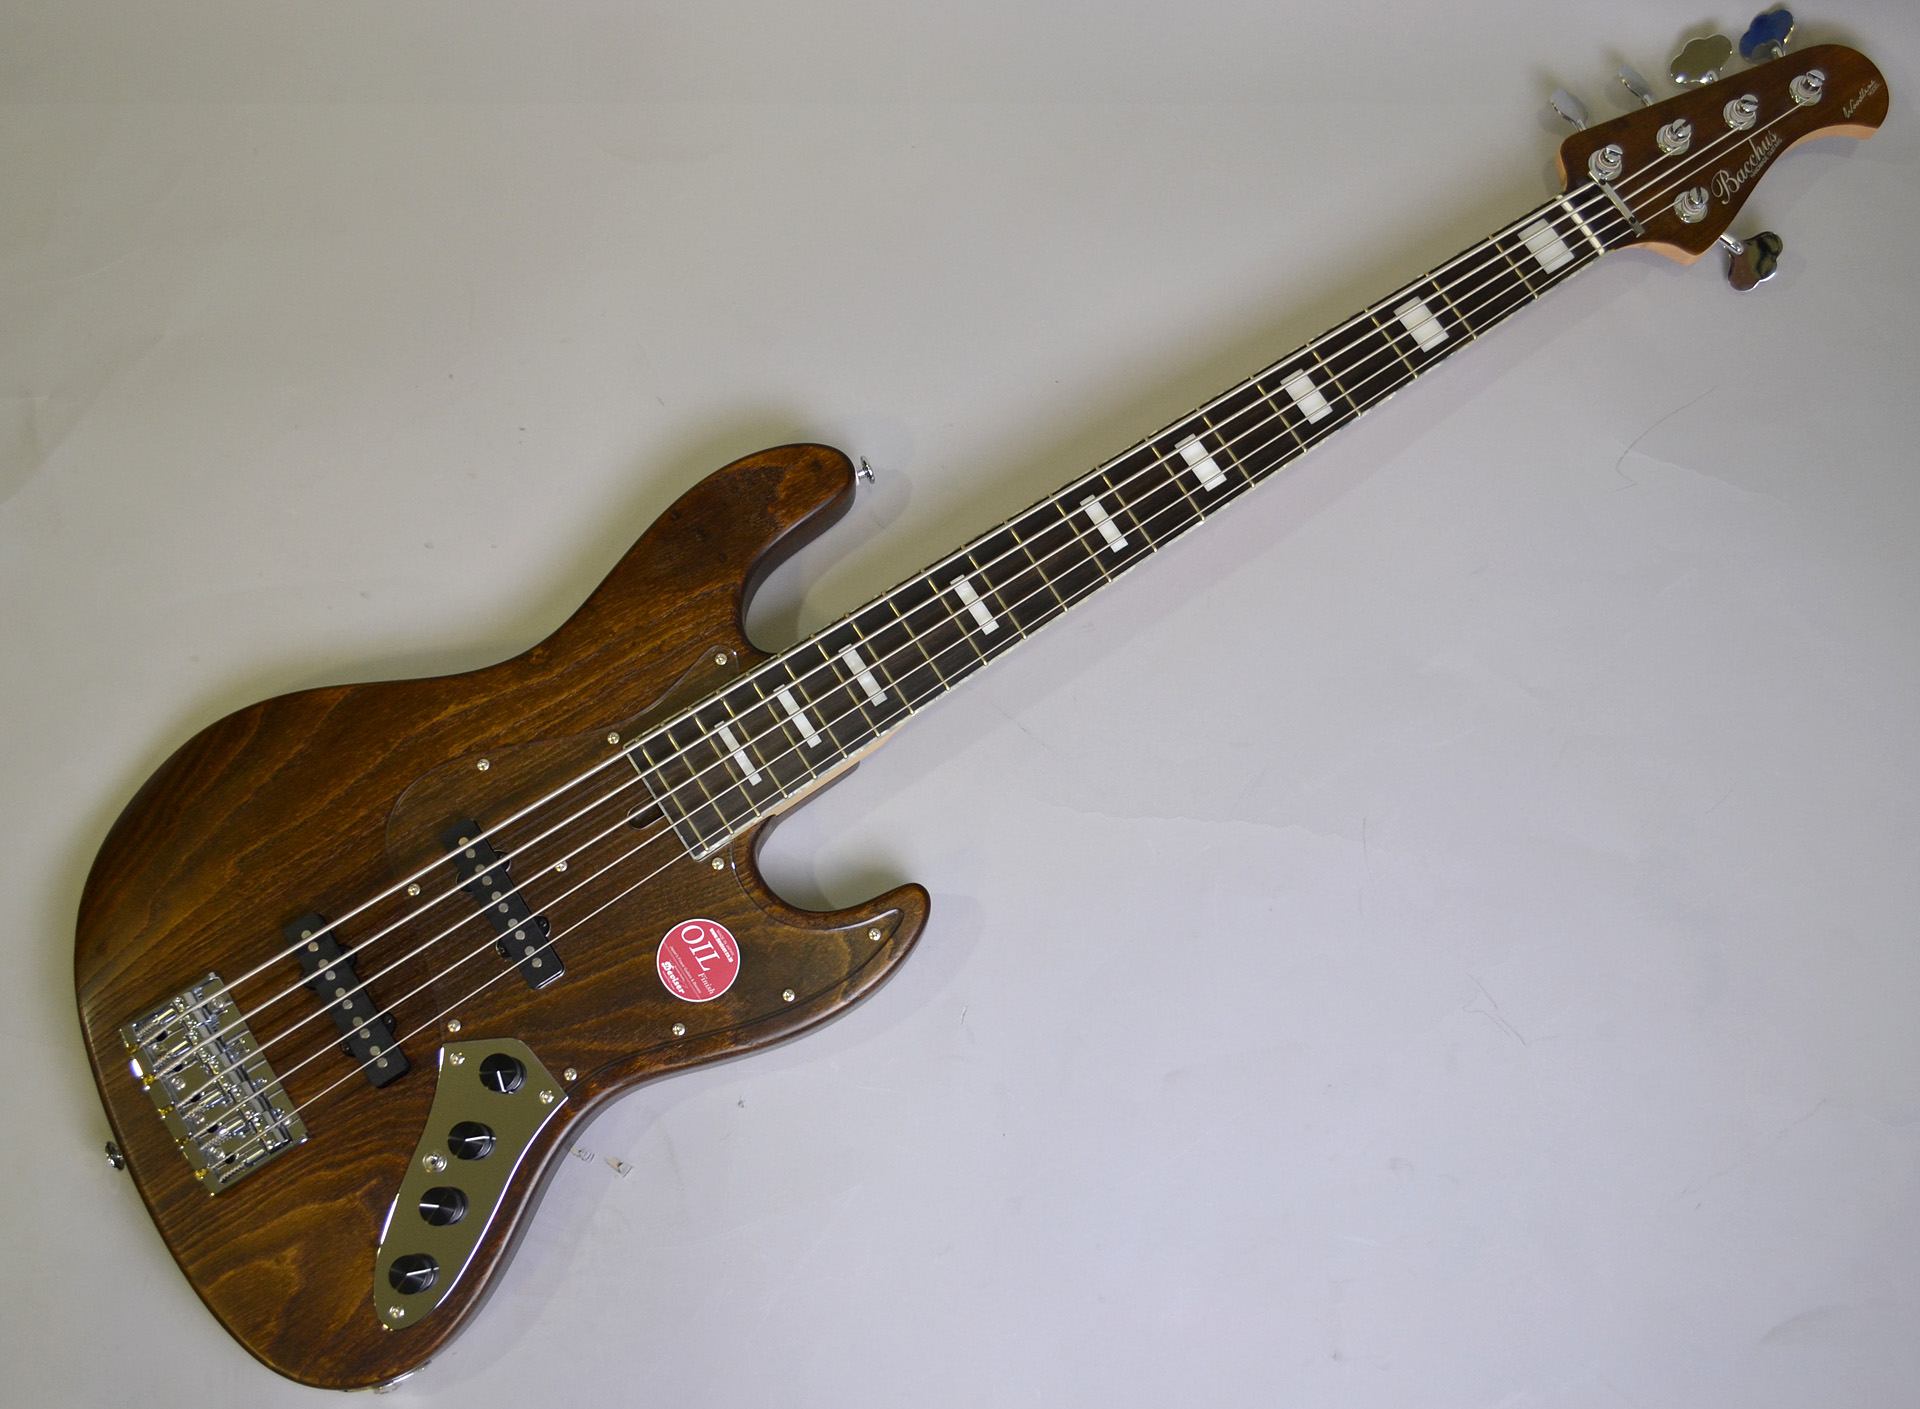 WOODLINE DX5 AC/ E BROWN OIL SN/138316のボディトップ-アップ画像